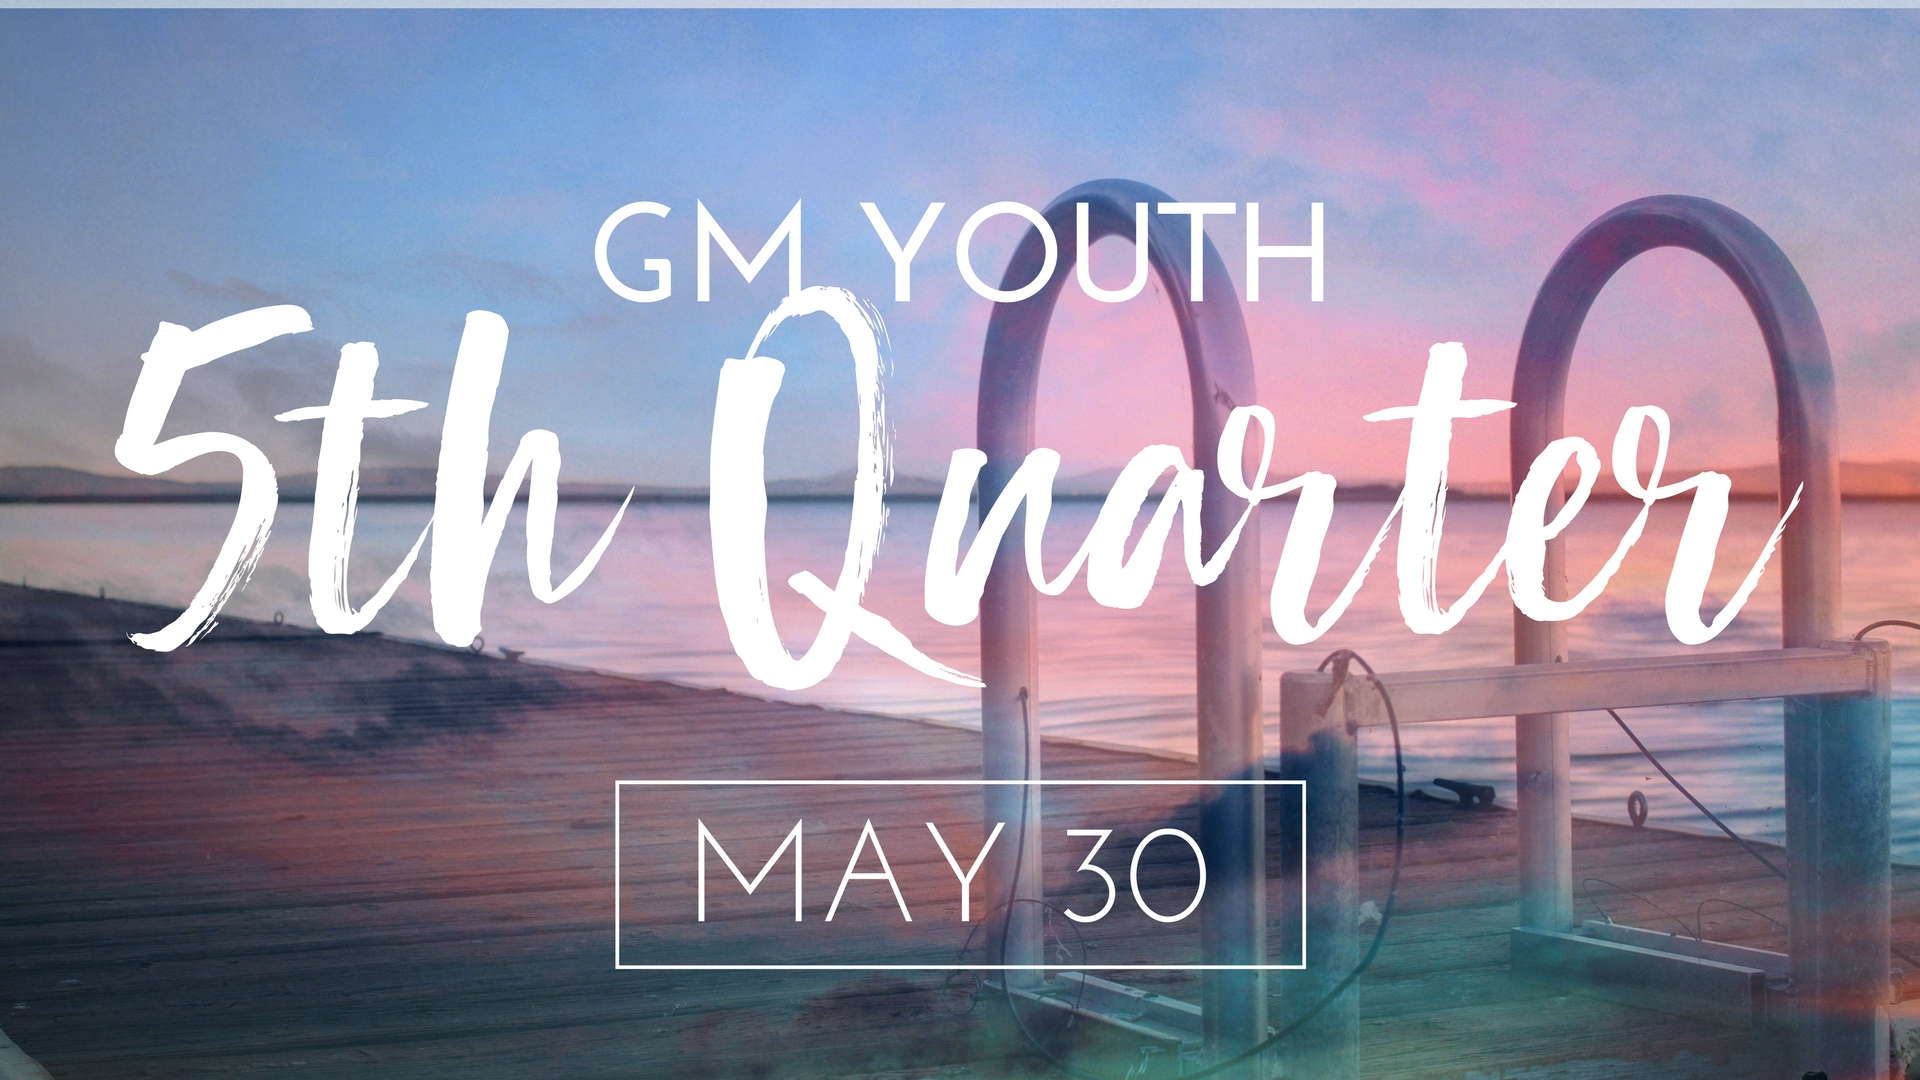 GM Youth - 5th Quarter